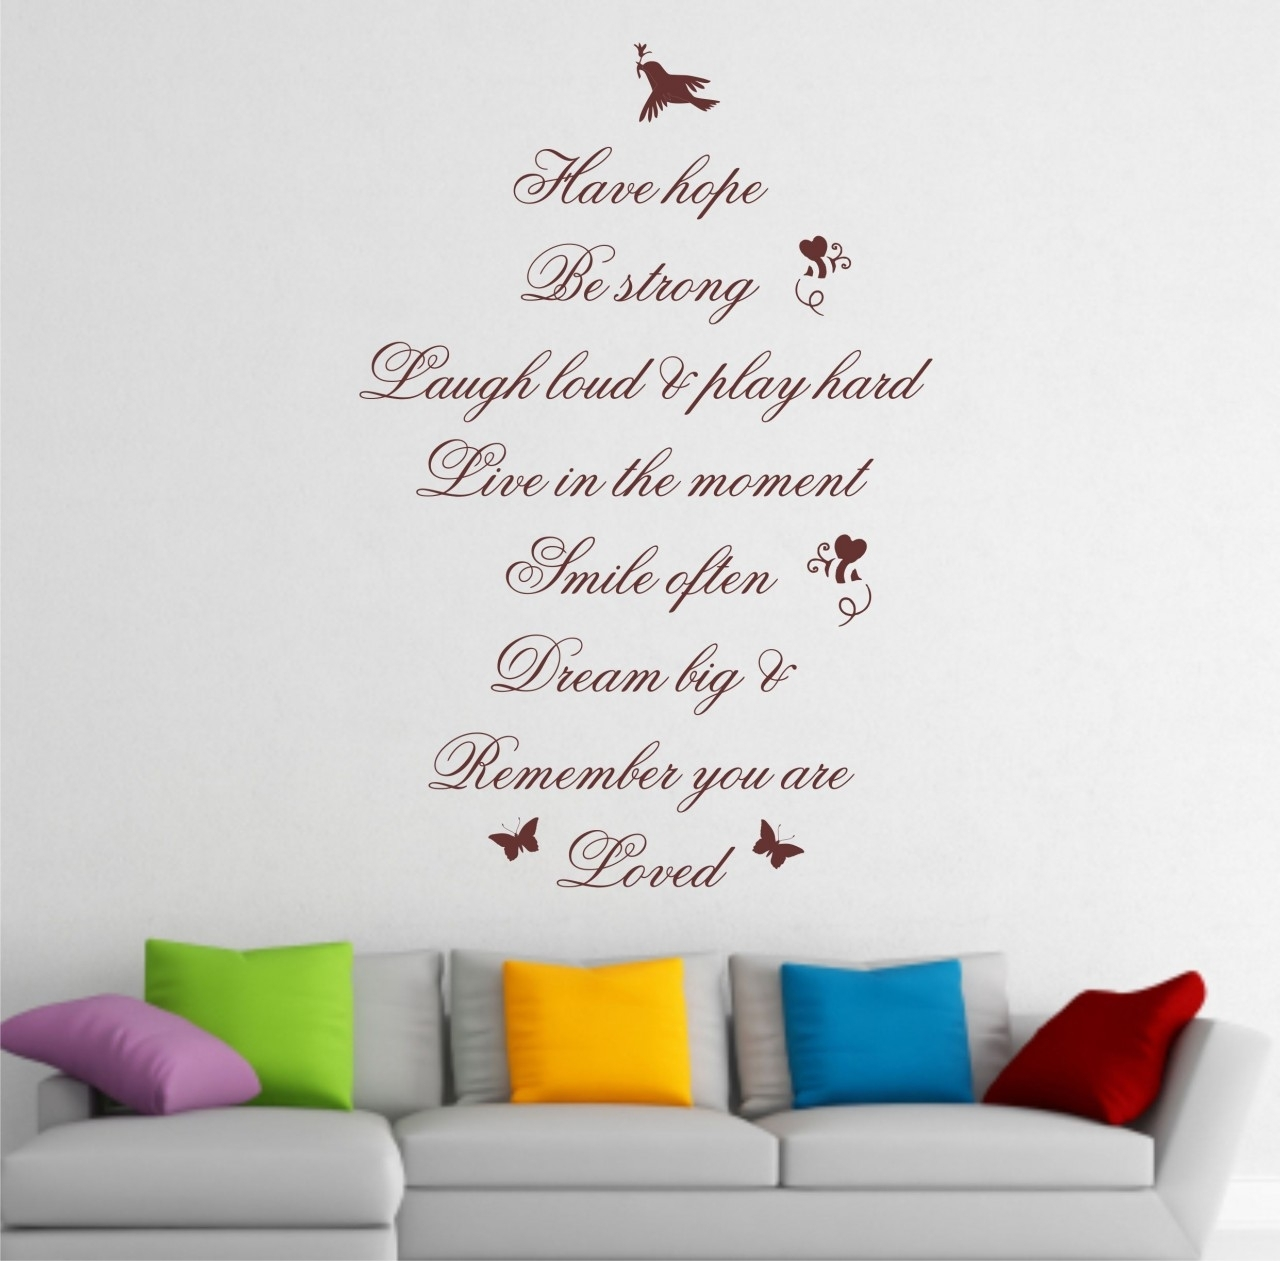 Stunning Wall Art Sayings Quotes 92 In With Wall Art Sayings Quotes With Regard To Latest Wall Art Sayings (View 14 of 20)